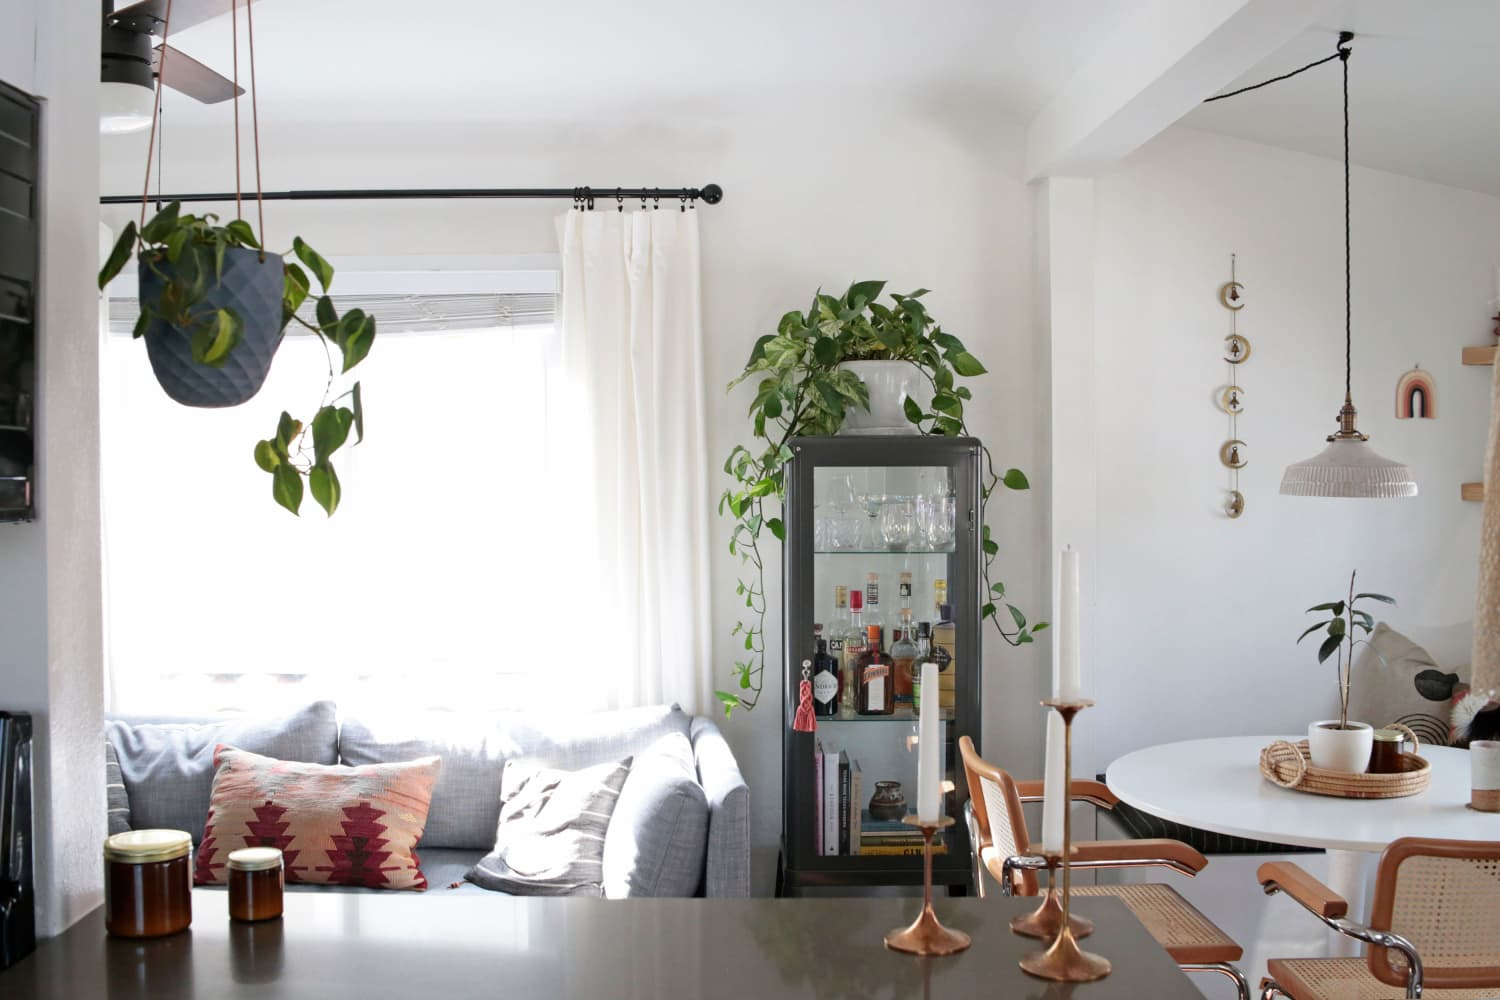 Small-Space Solutions (and Lots of Natural Light) Make This 408-Square-Foot Rental Apartment Lovely